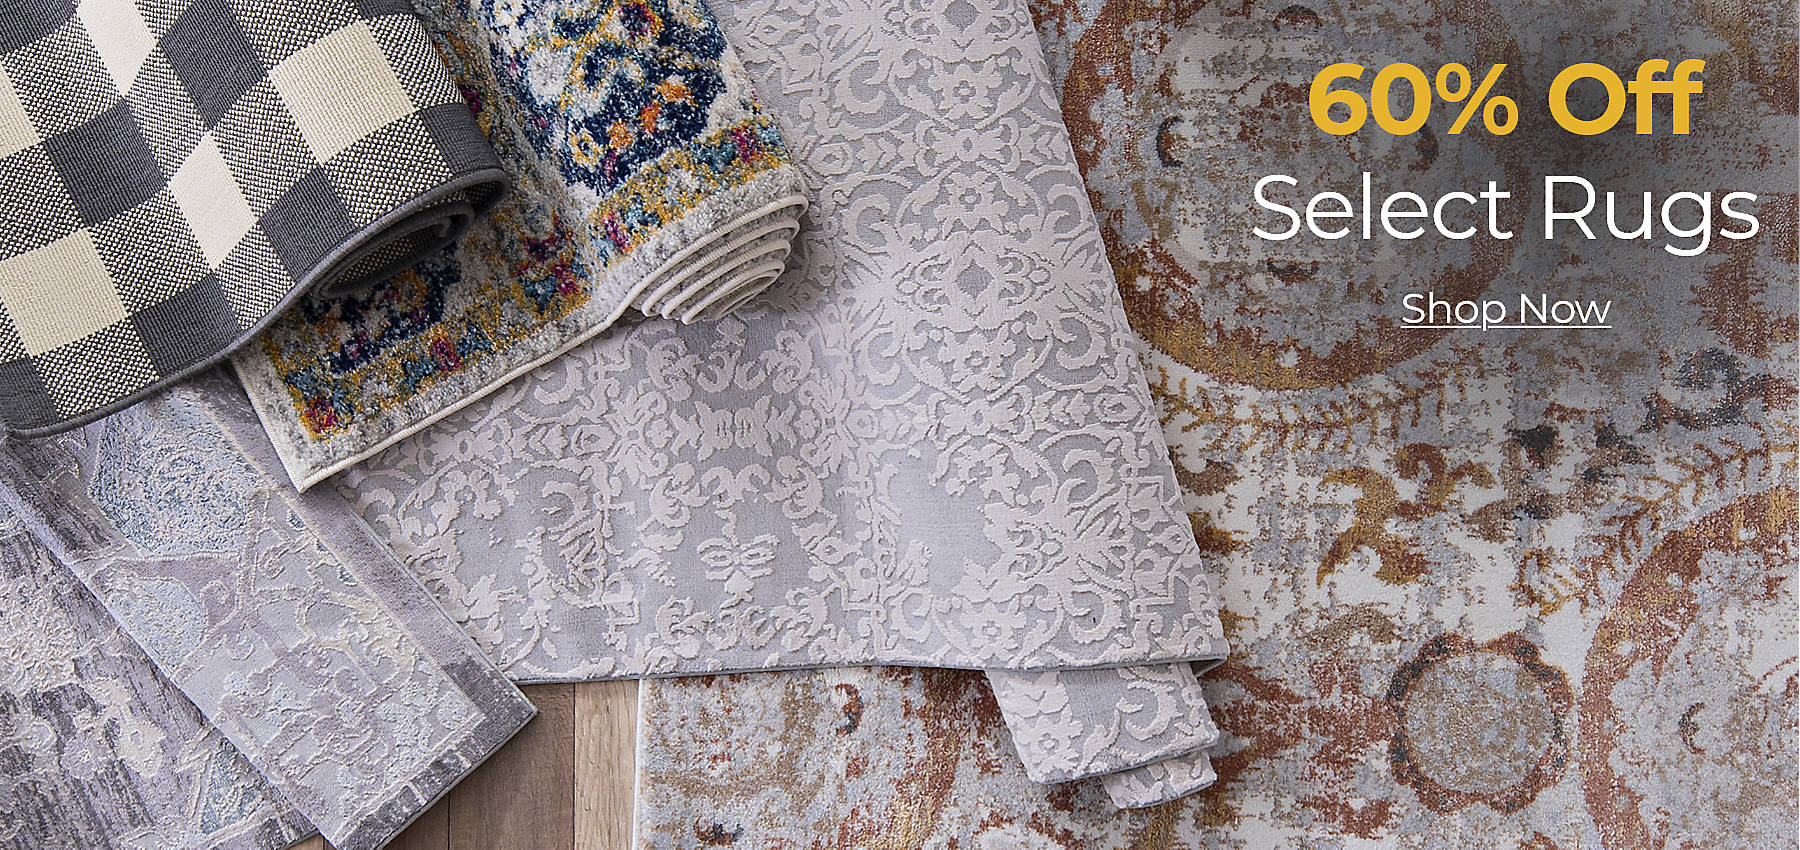 60% Off Select Rugs Shop Now